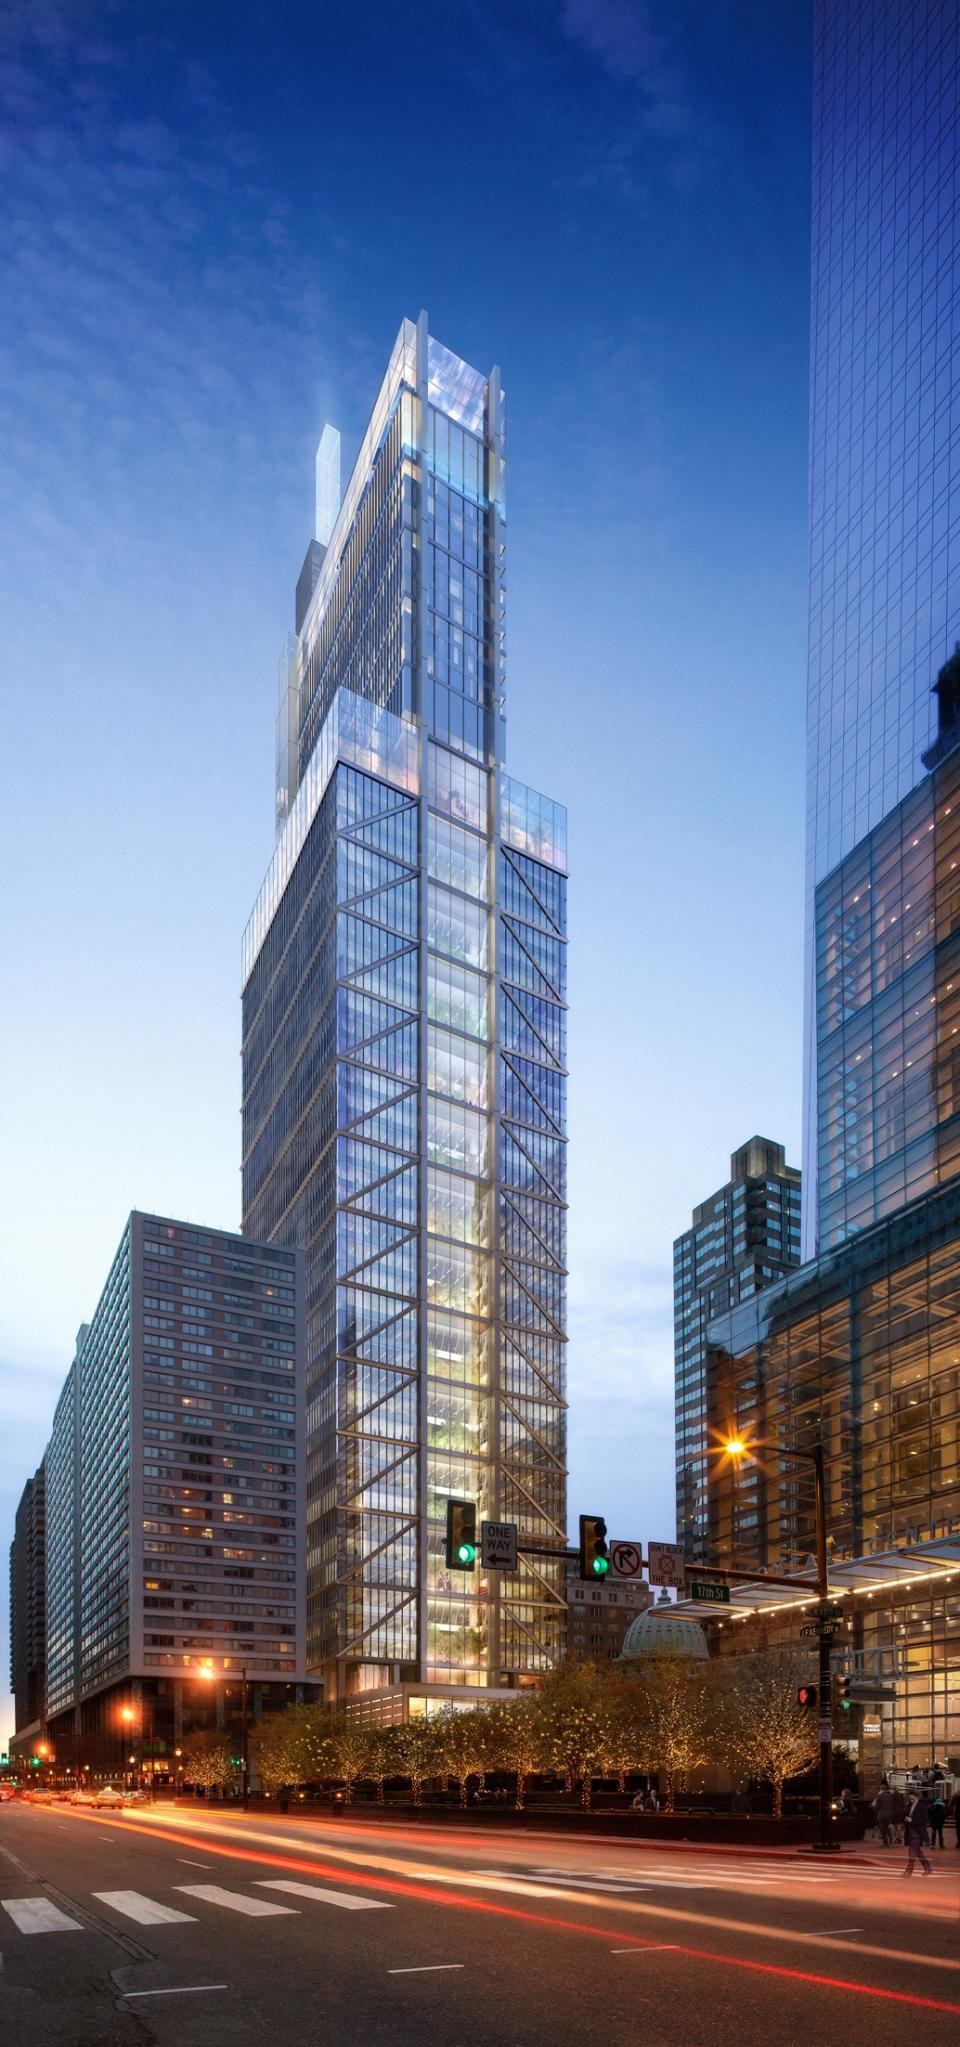 The Comcast Innovation and Technology Center, scheduled to open in early 2018, will be a state-of-the-art home for the company's growing workforce of technologists, engineers, and software architects